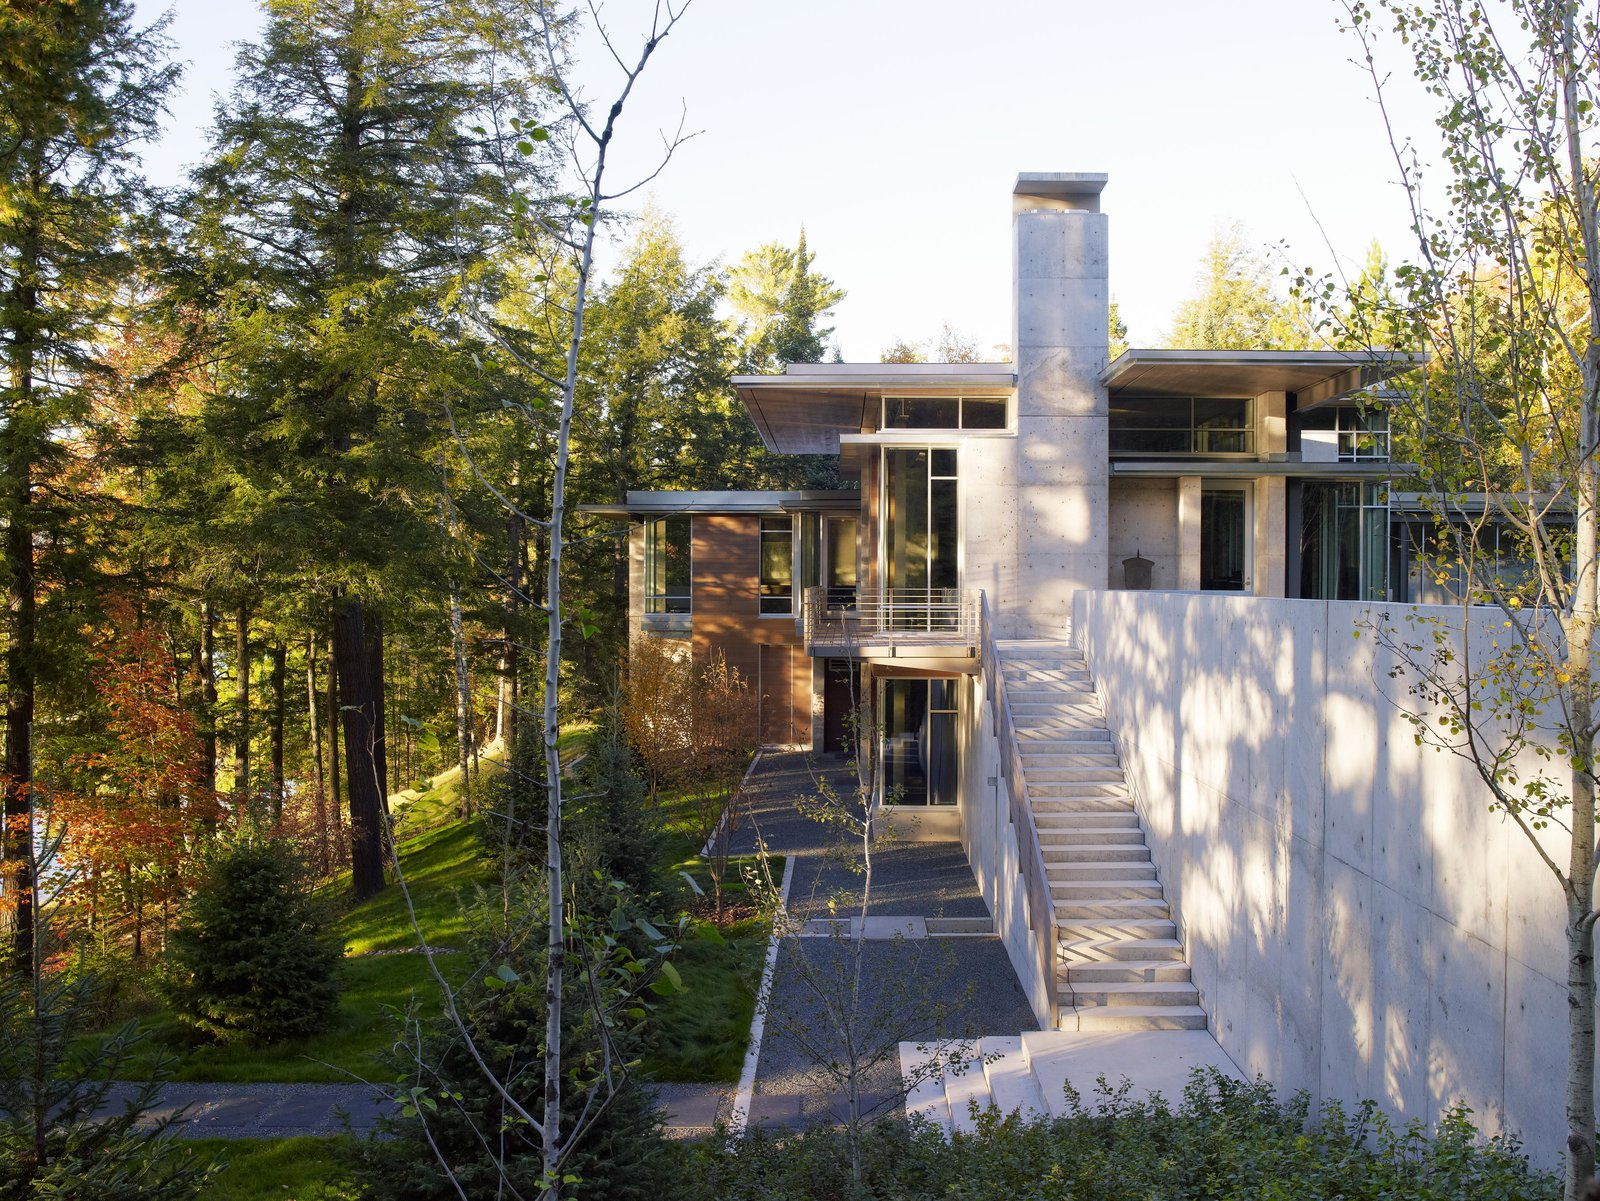 Garden and Outdoor Northwoods House  Northwoods House by Olson Kundig